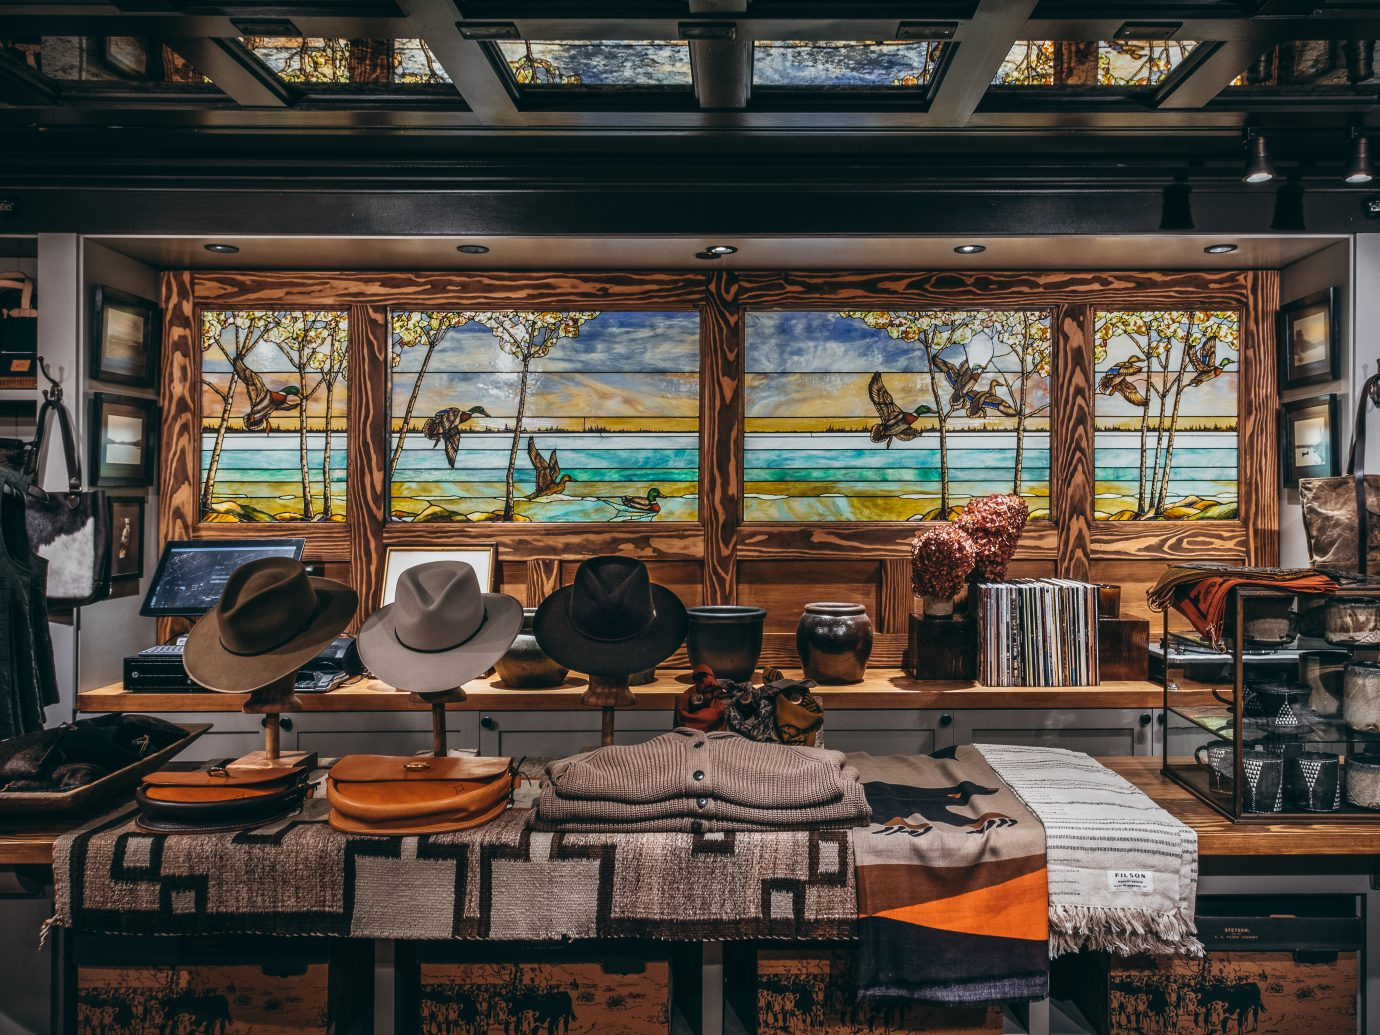 C.C. Filson Flagship store in New York, NY on November 8, 2018.